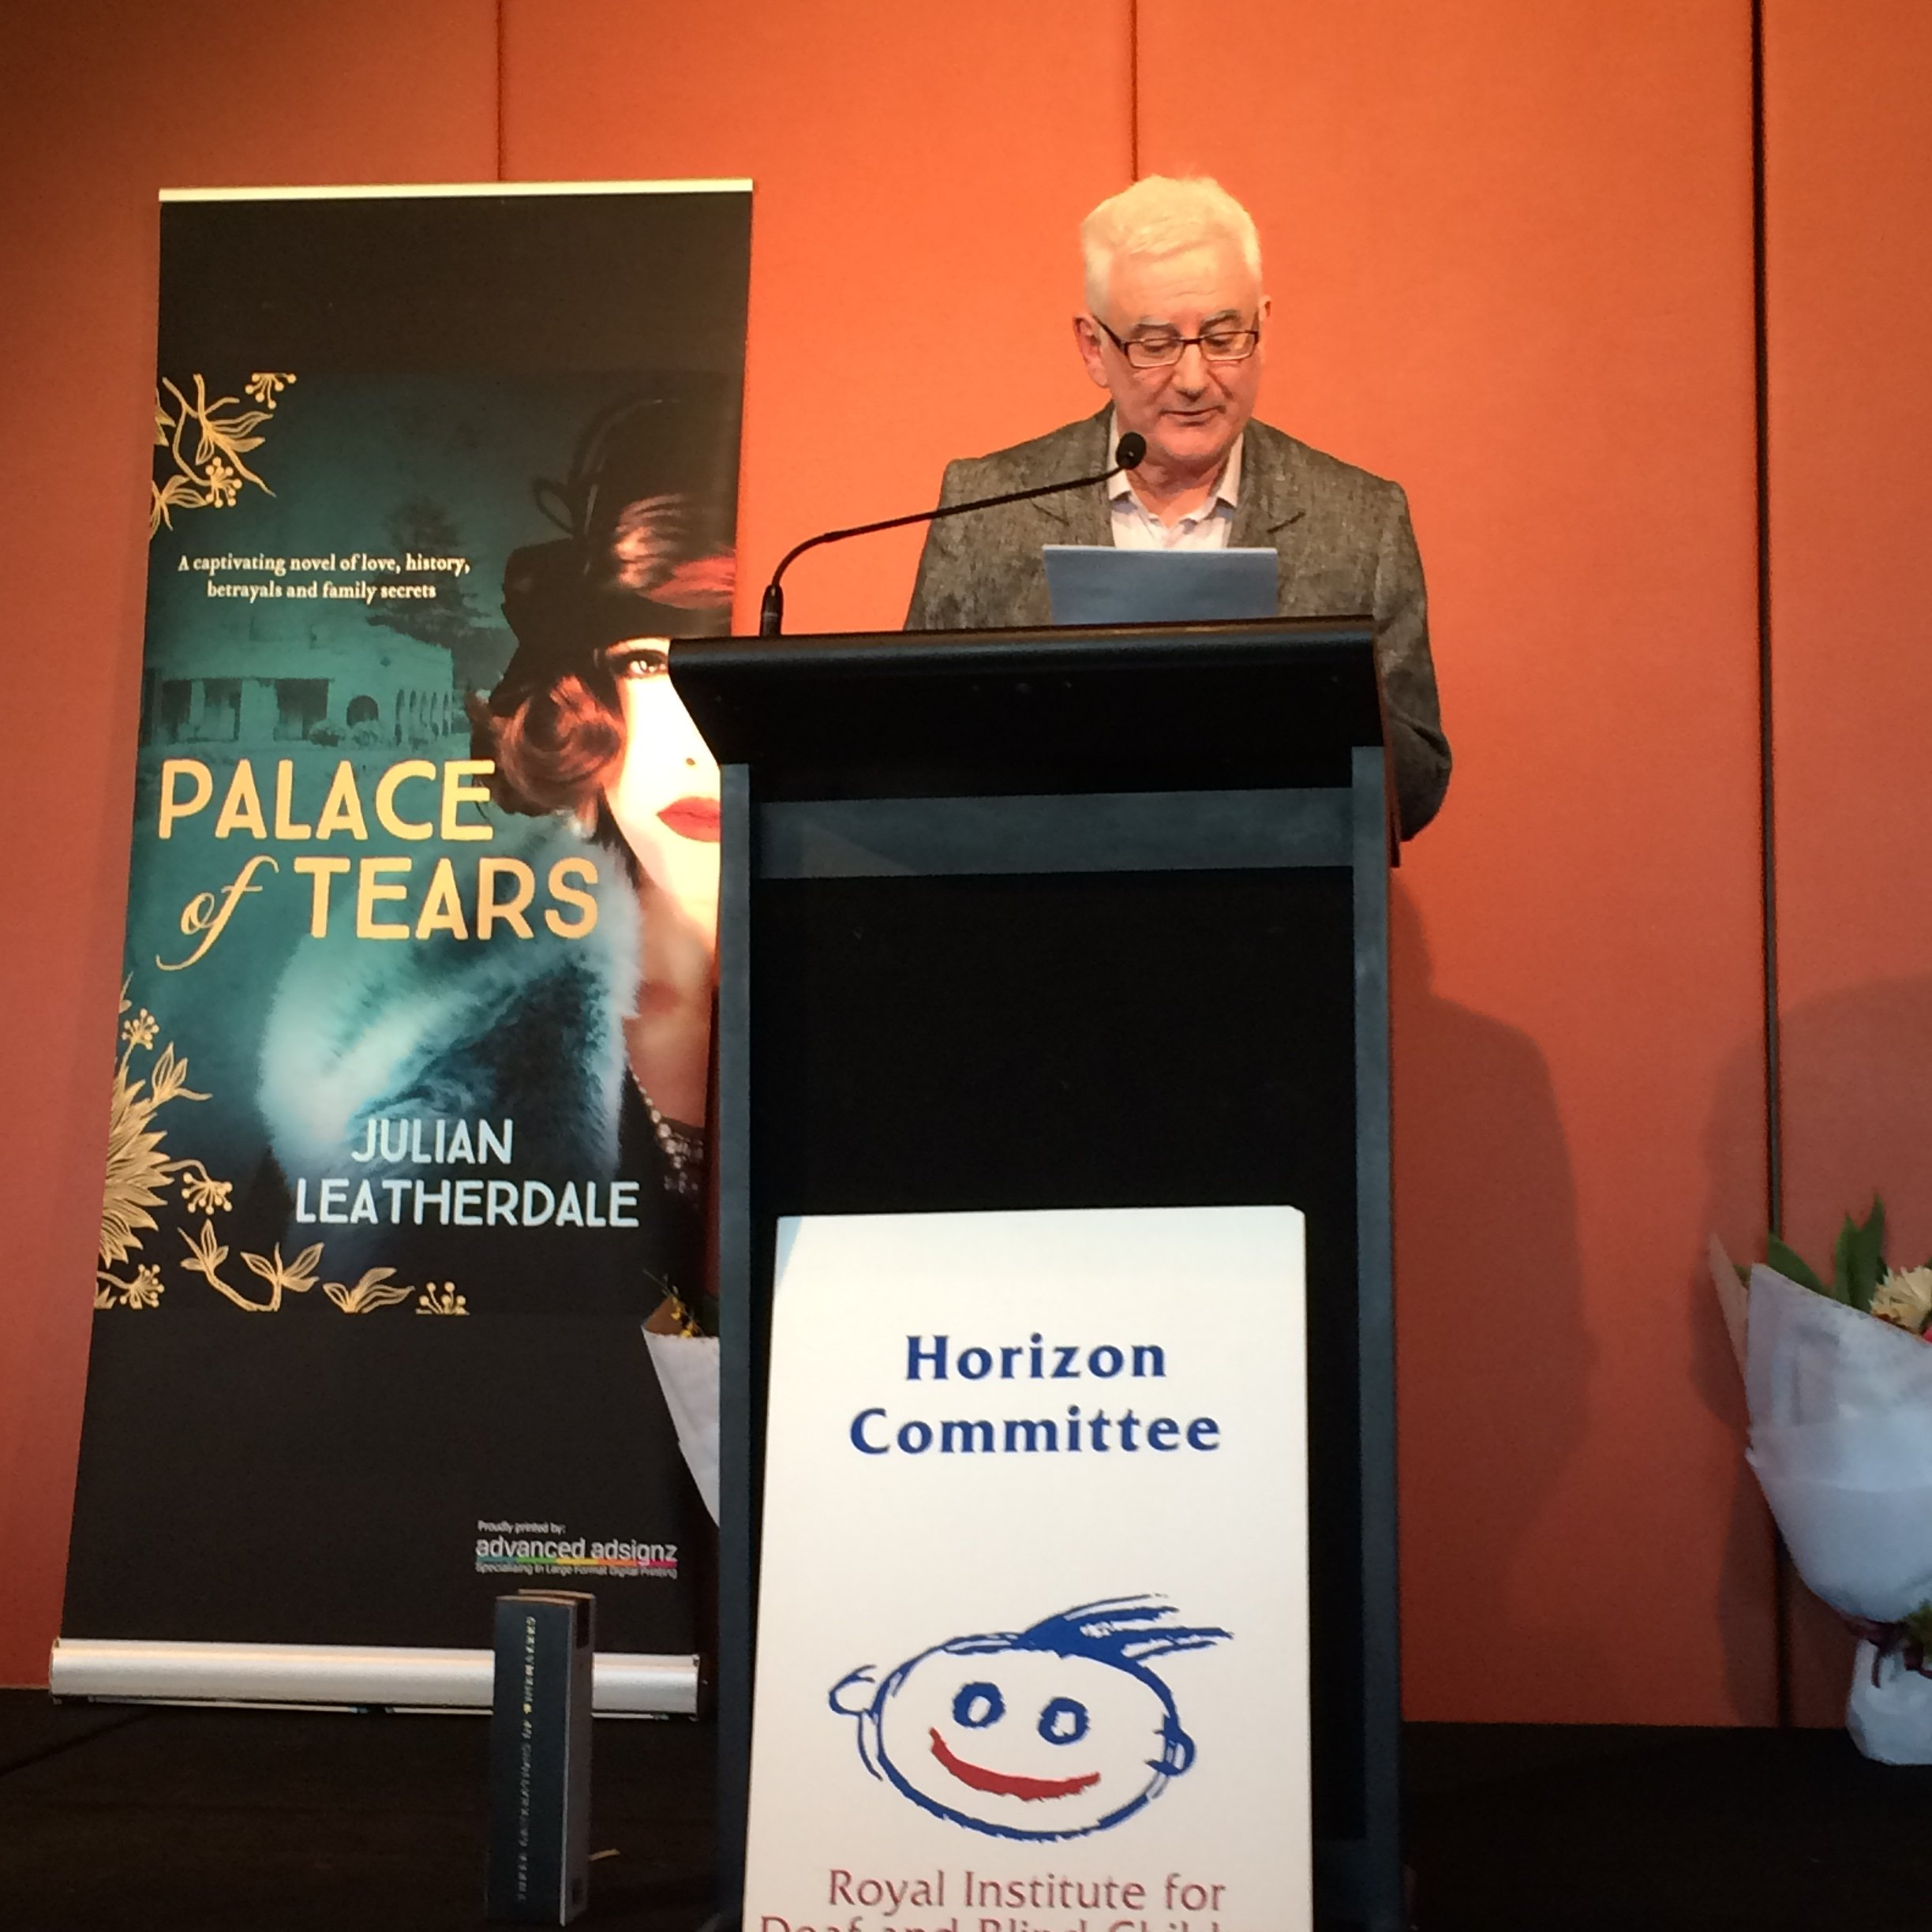 Delivering my speech on Palace of Tears